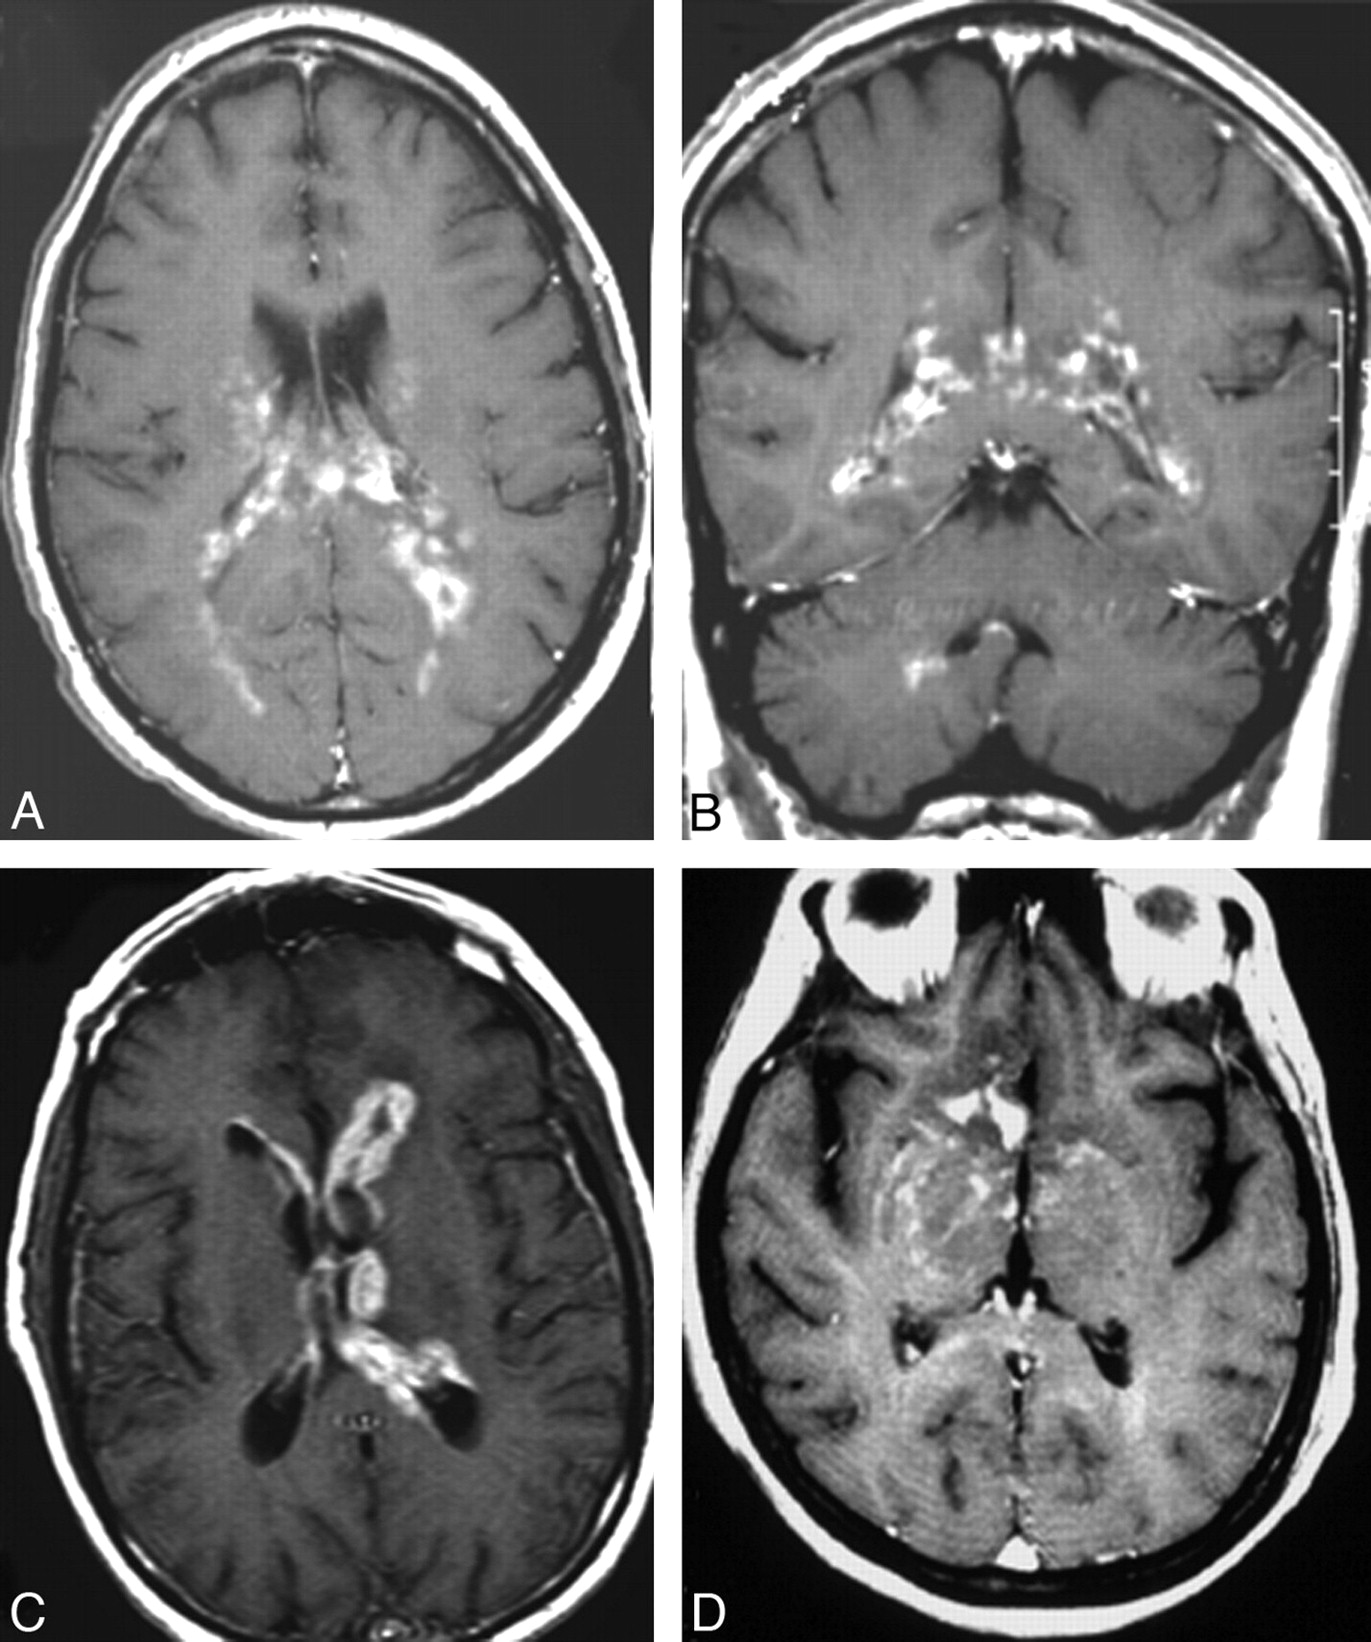 ct and mr imaging features of primary central nervous systemdownload figure